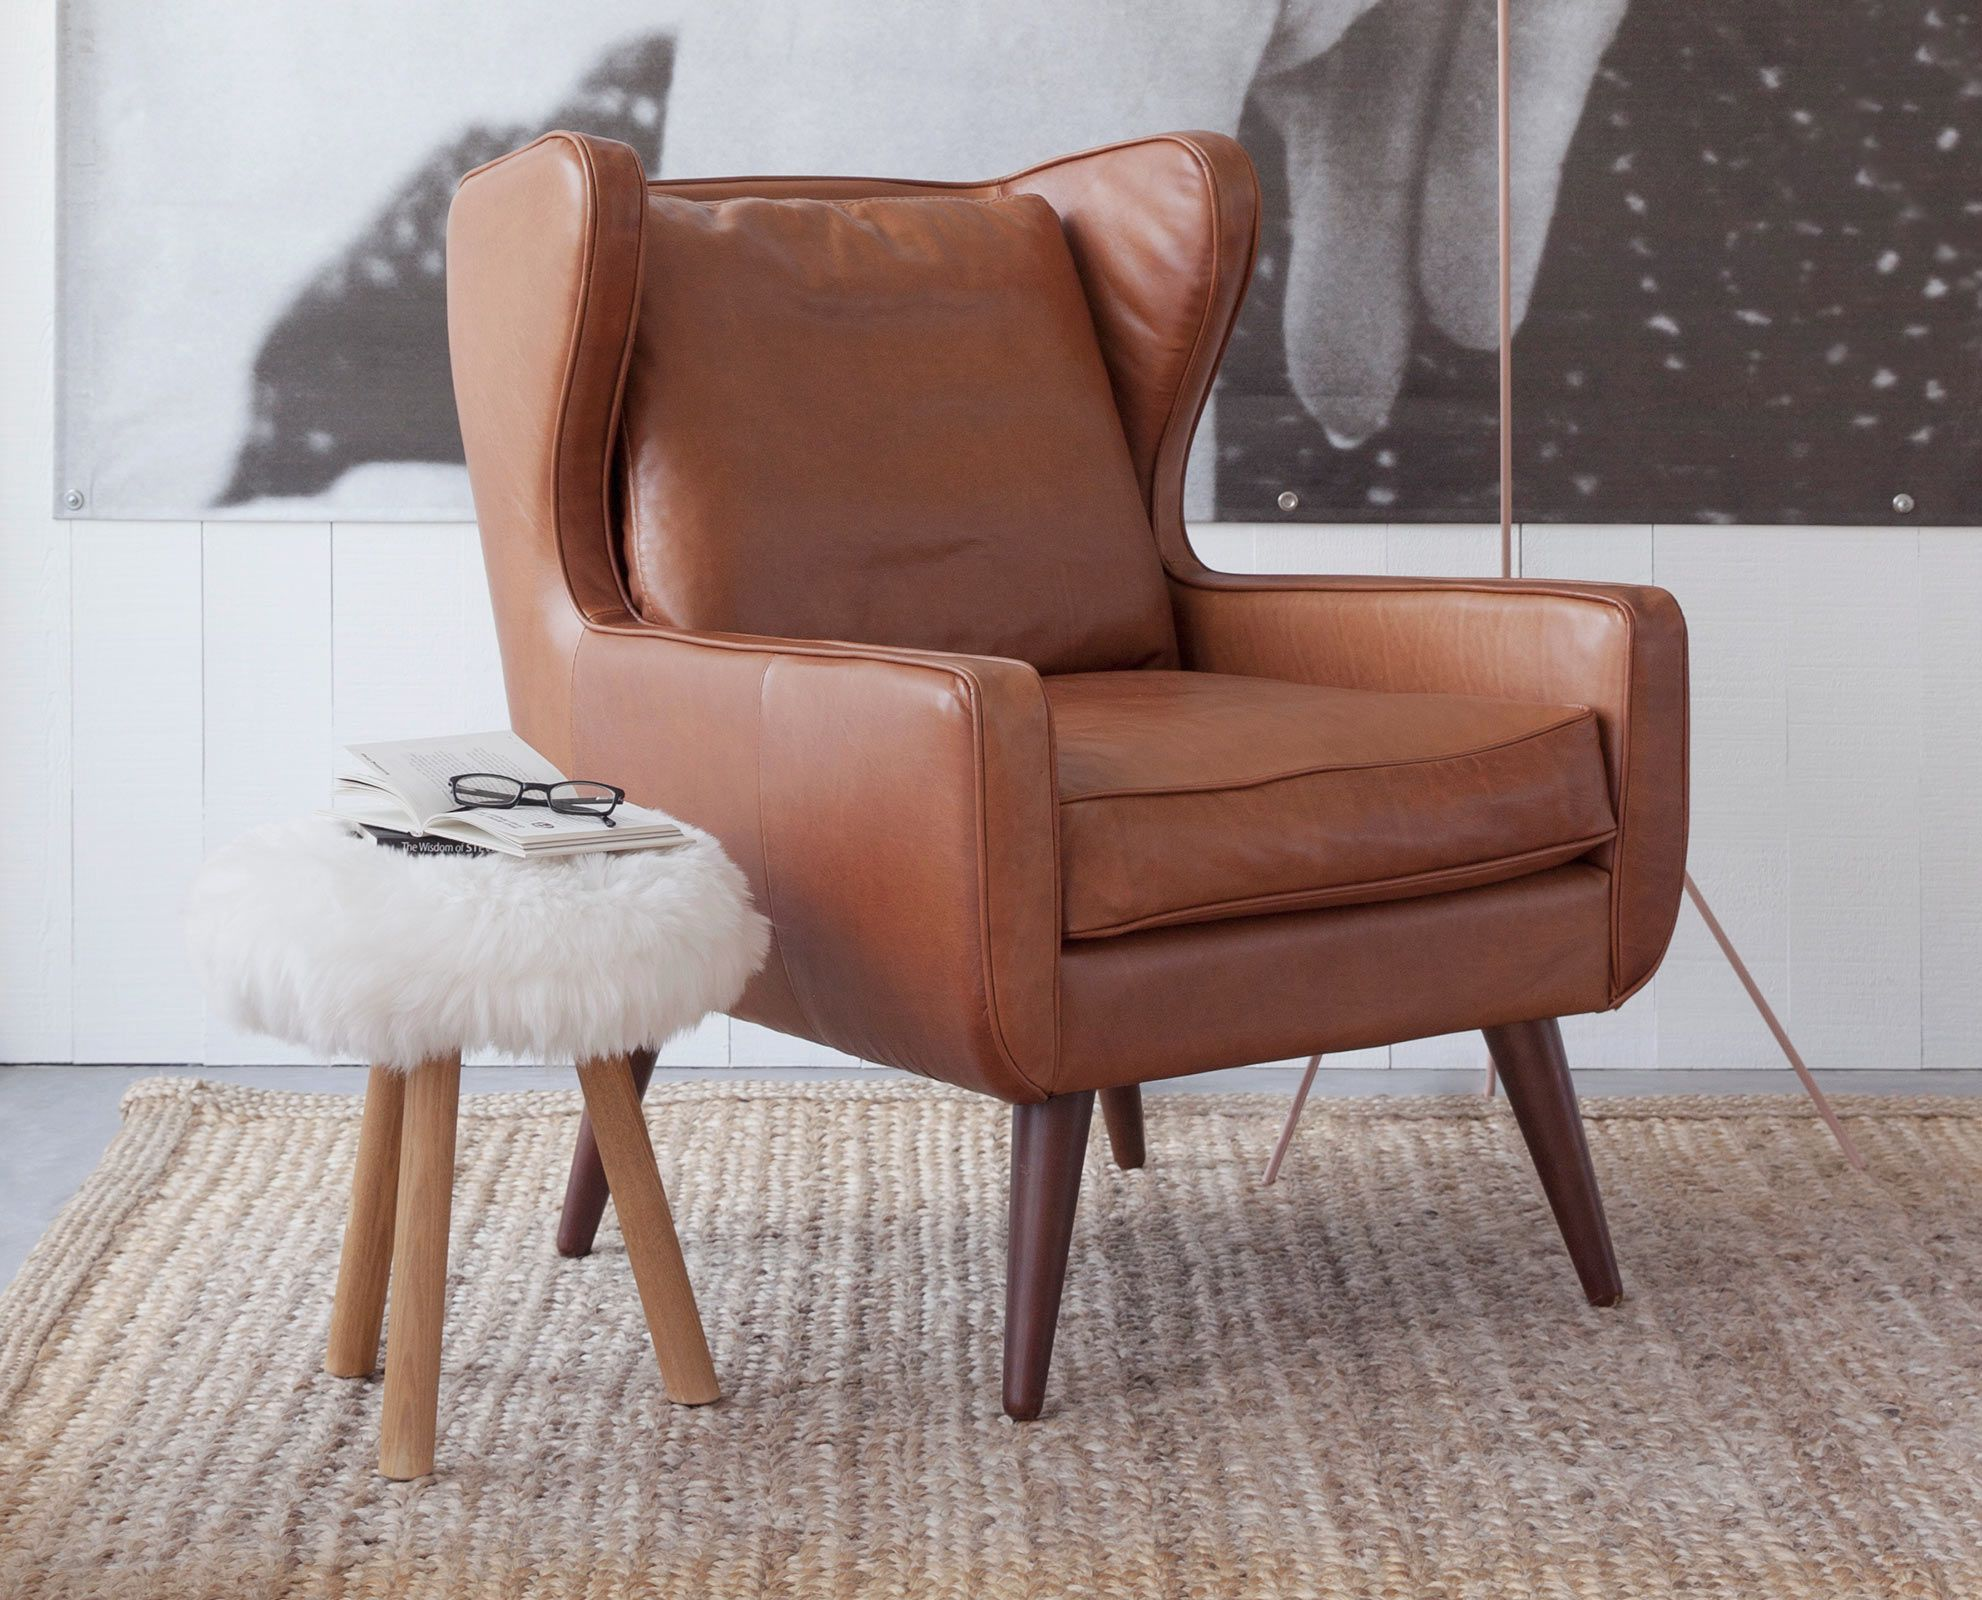 The Giesen Leather Chair from Scandinavian Designs leather chair